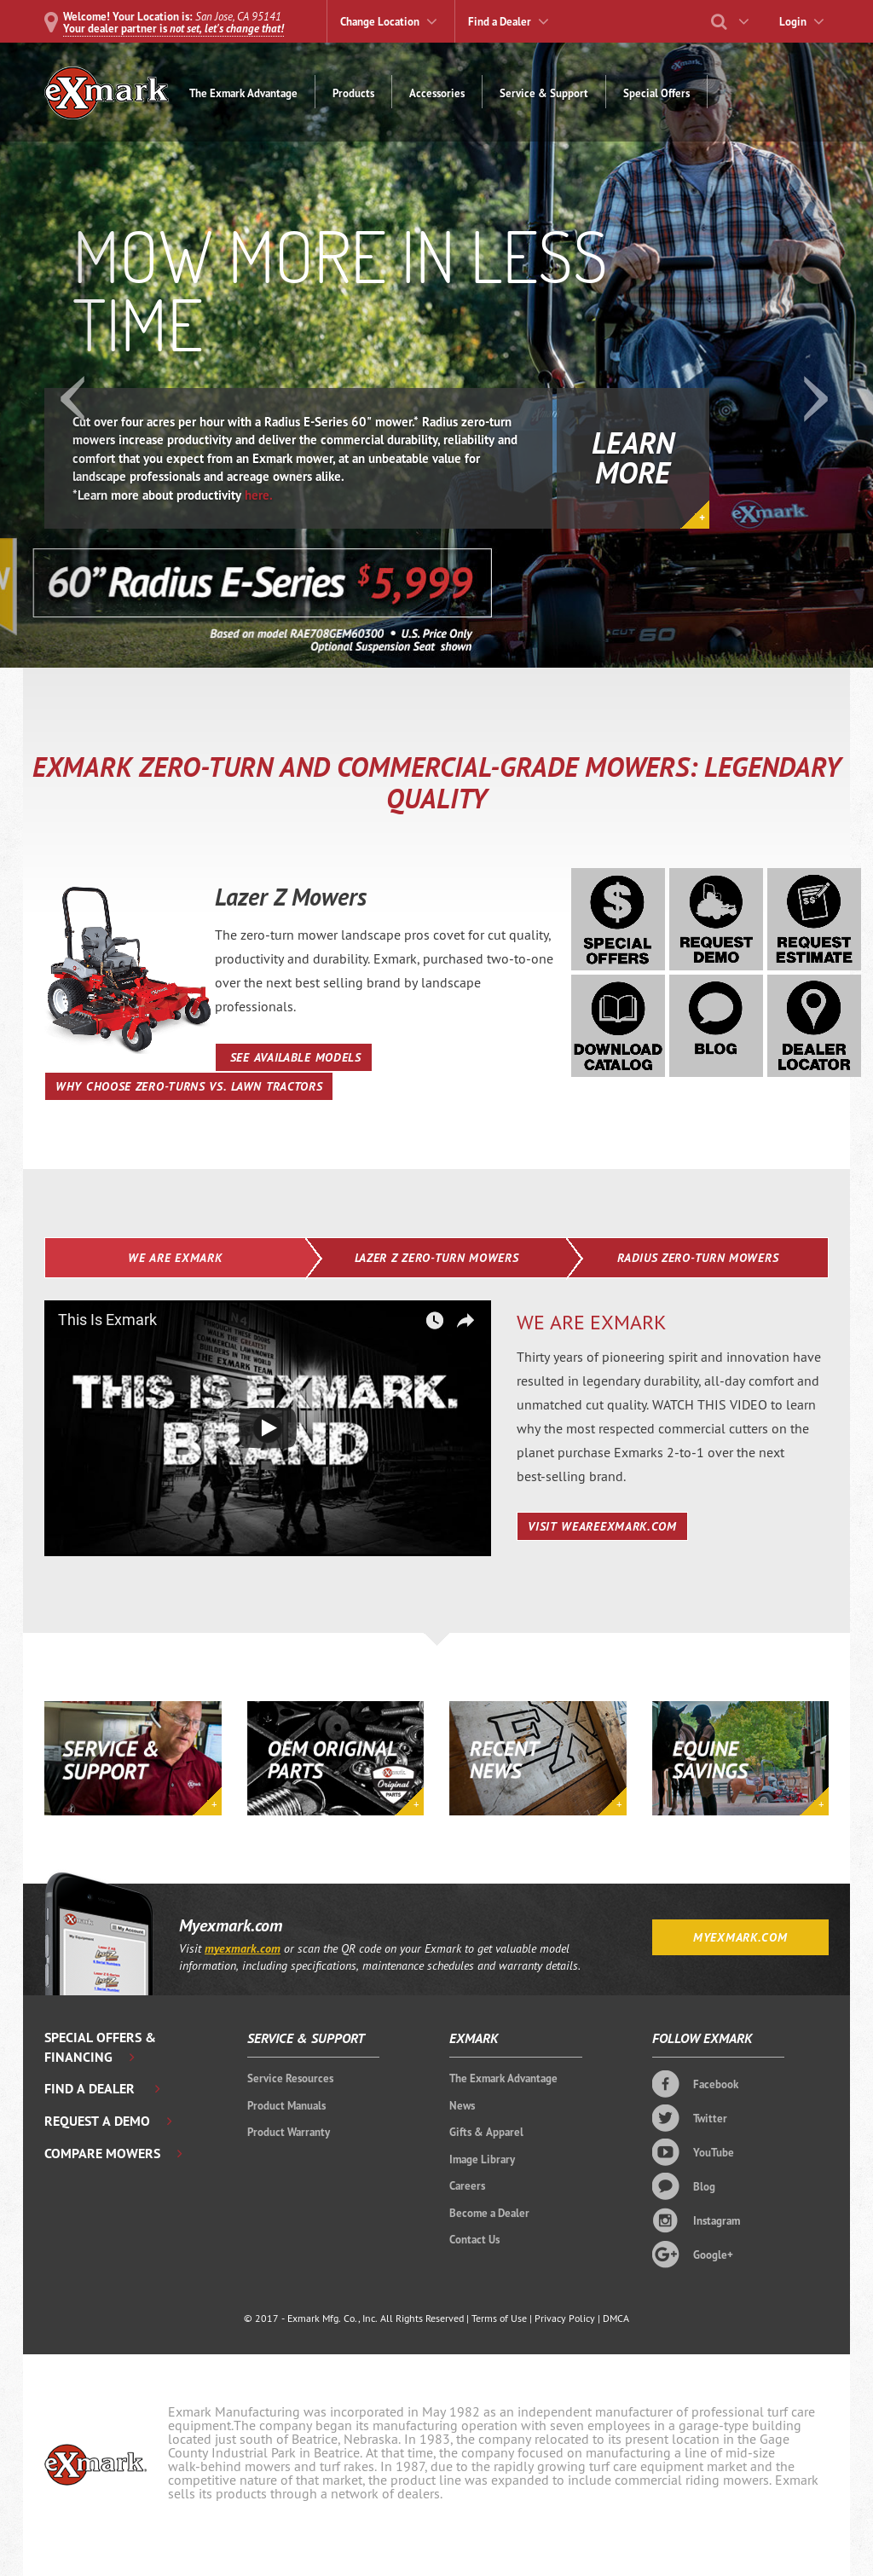 Exmark Competitors, Revenue and Employees - Owler Company Profile